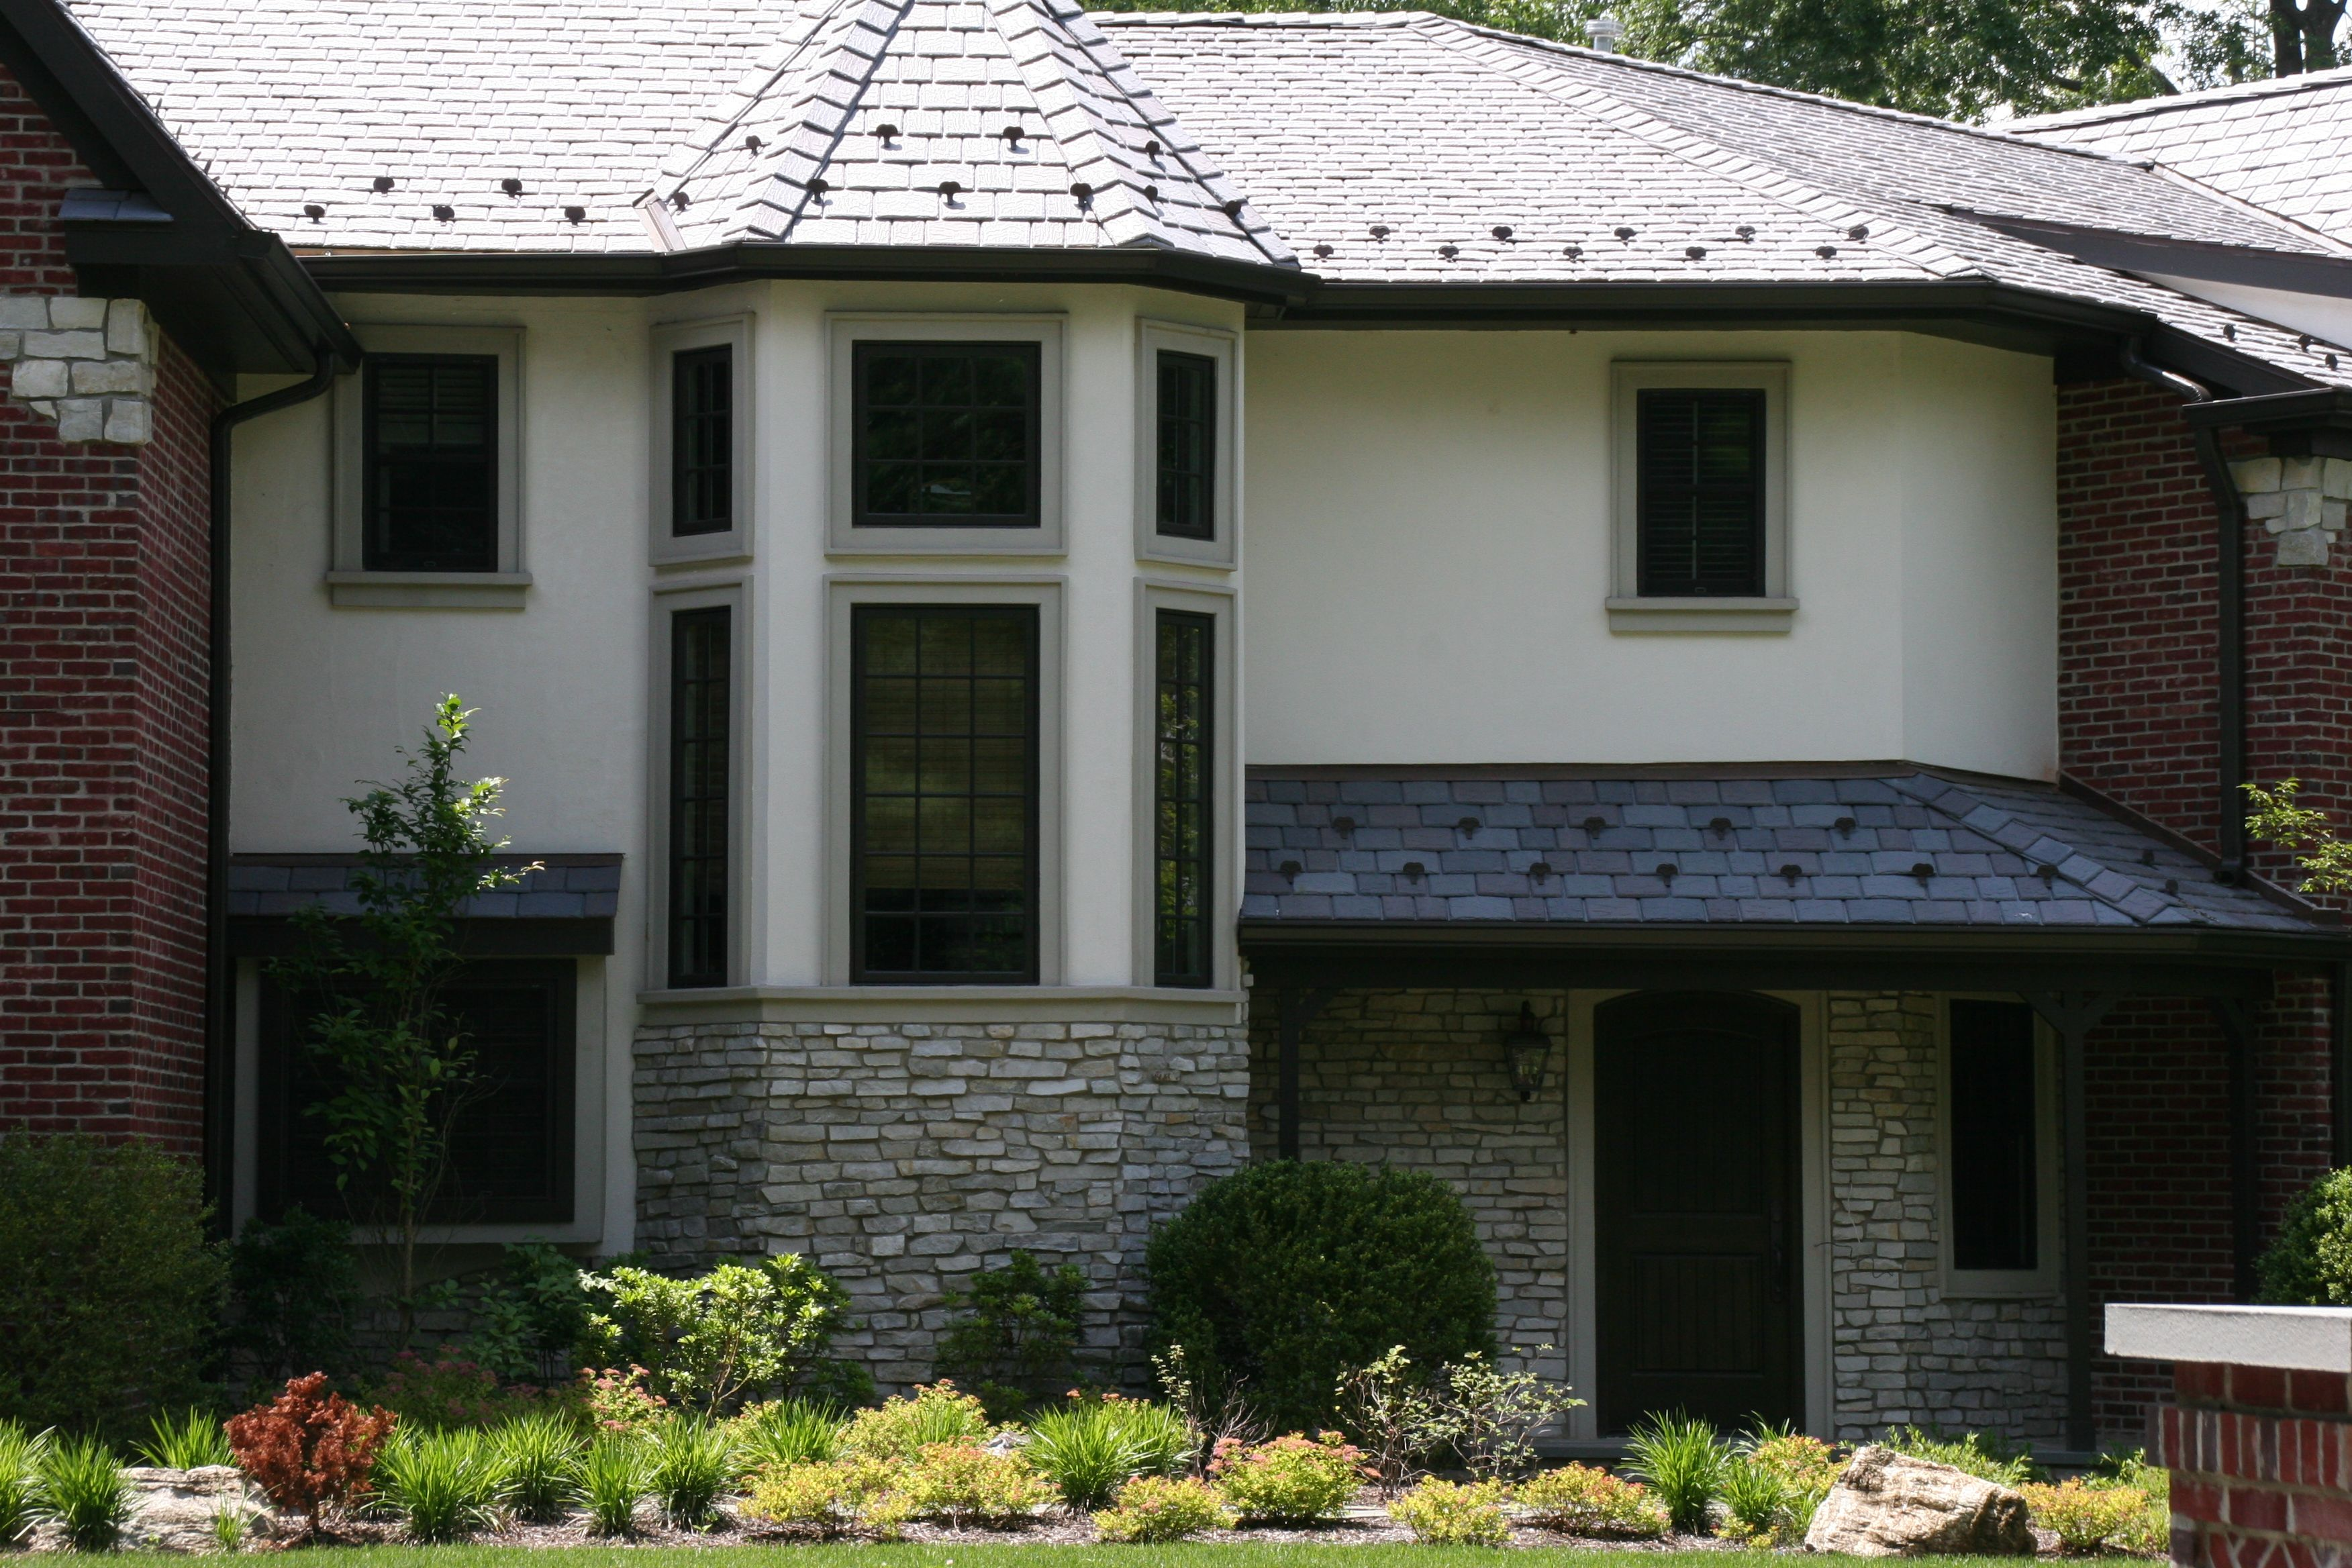 exterior stucco window trims yahoo image search results - Exterior Window Trim Stucco